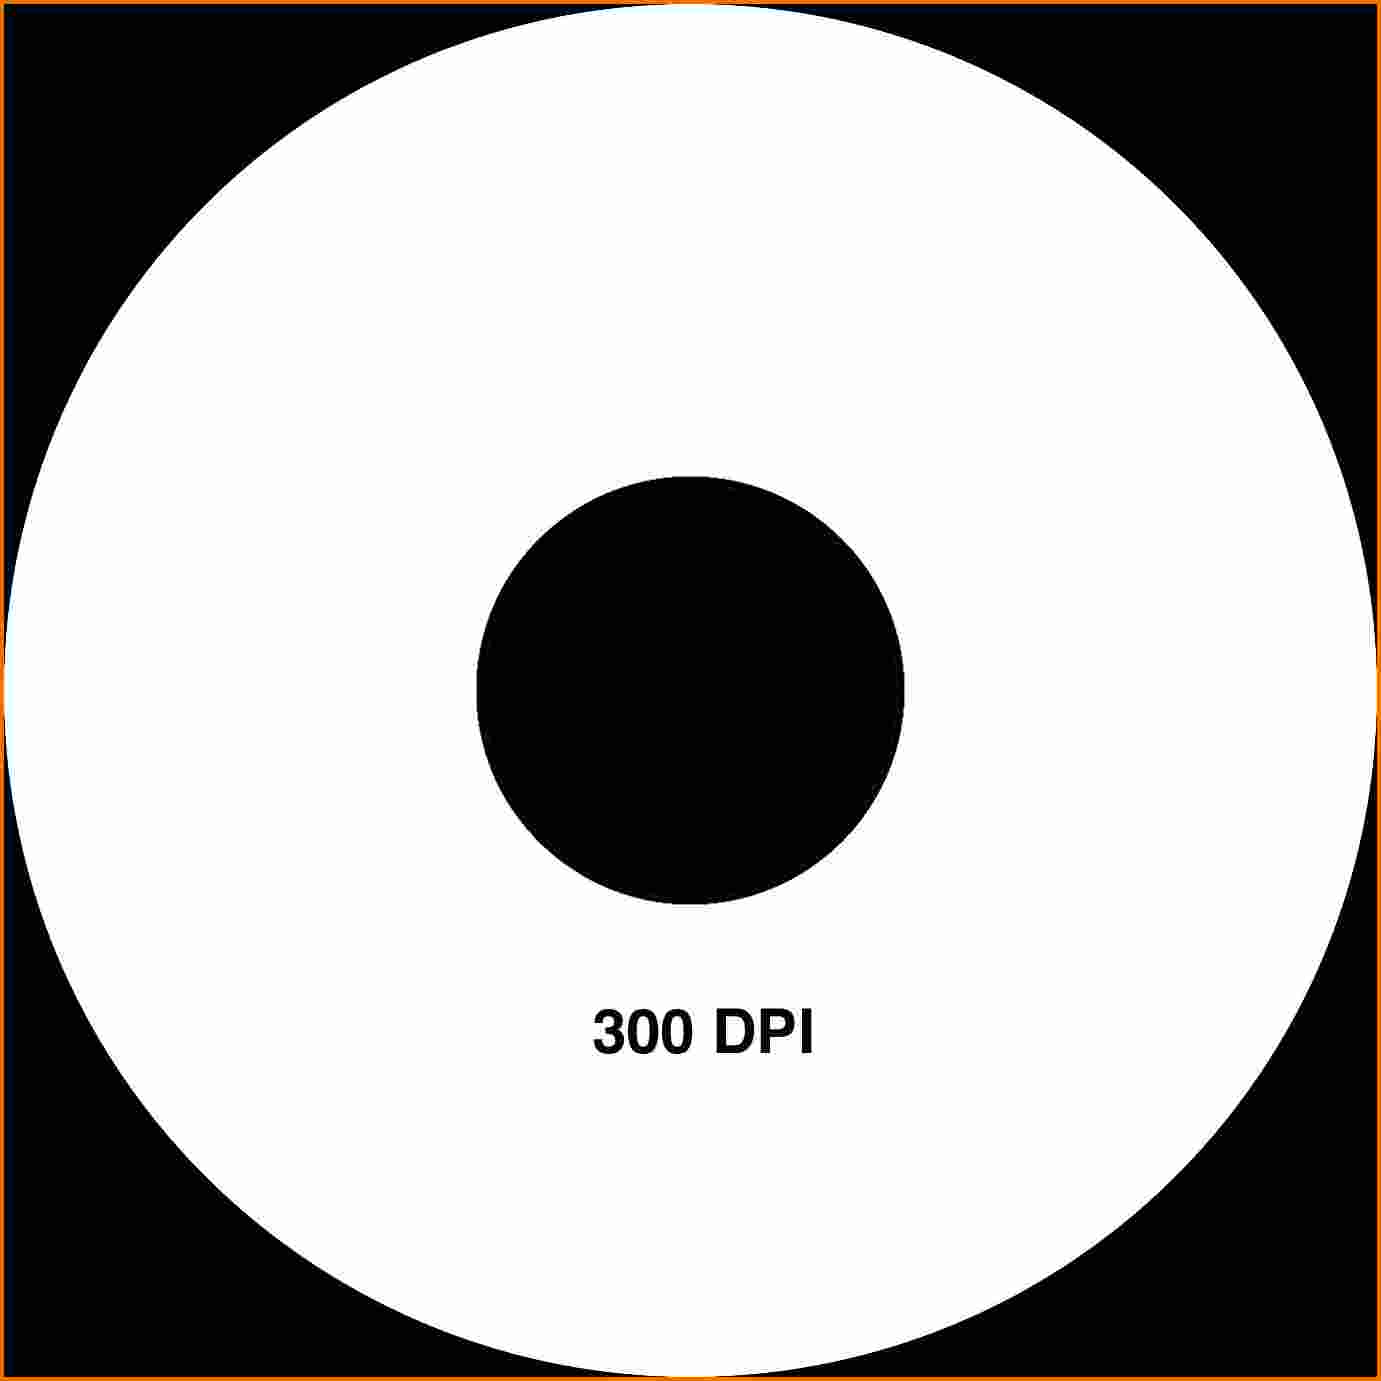 Free download CD Labels template, how to make CD labels, print CD